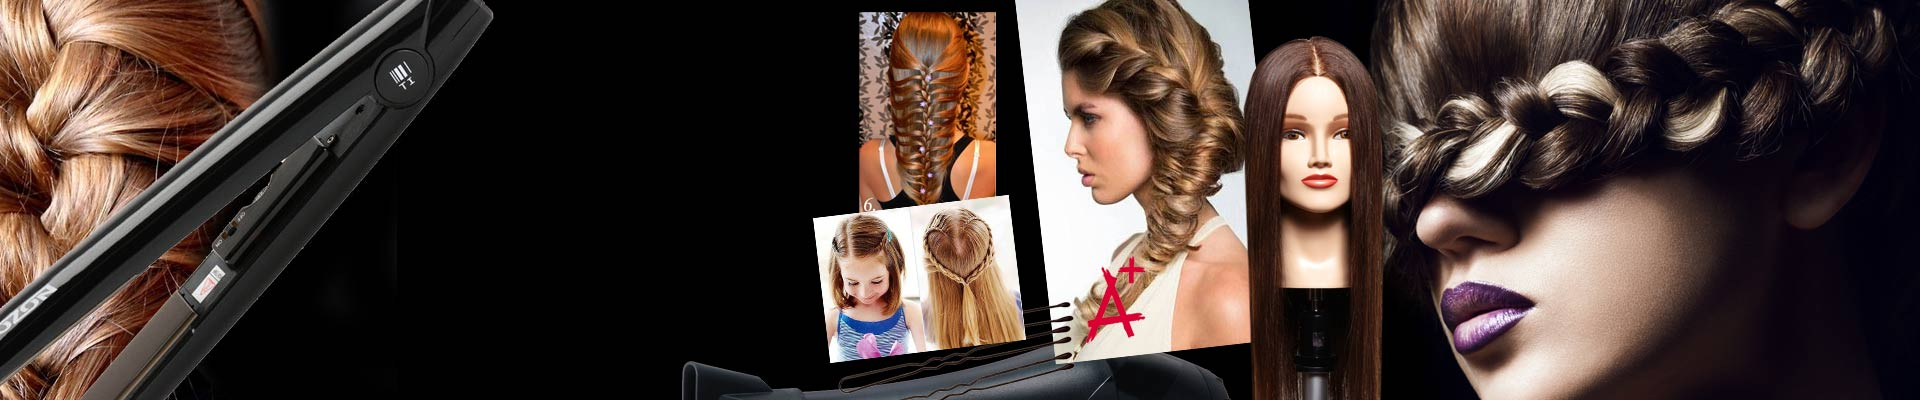 Hair Styling Course and Classes Online  Michael Boychuck Online Hair Academy